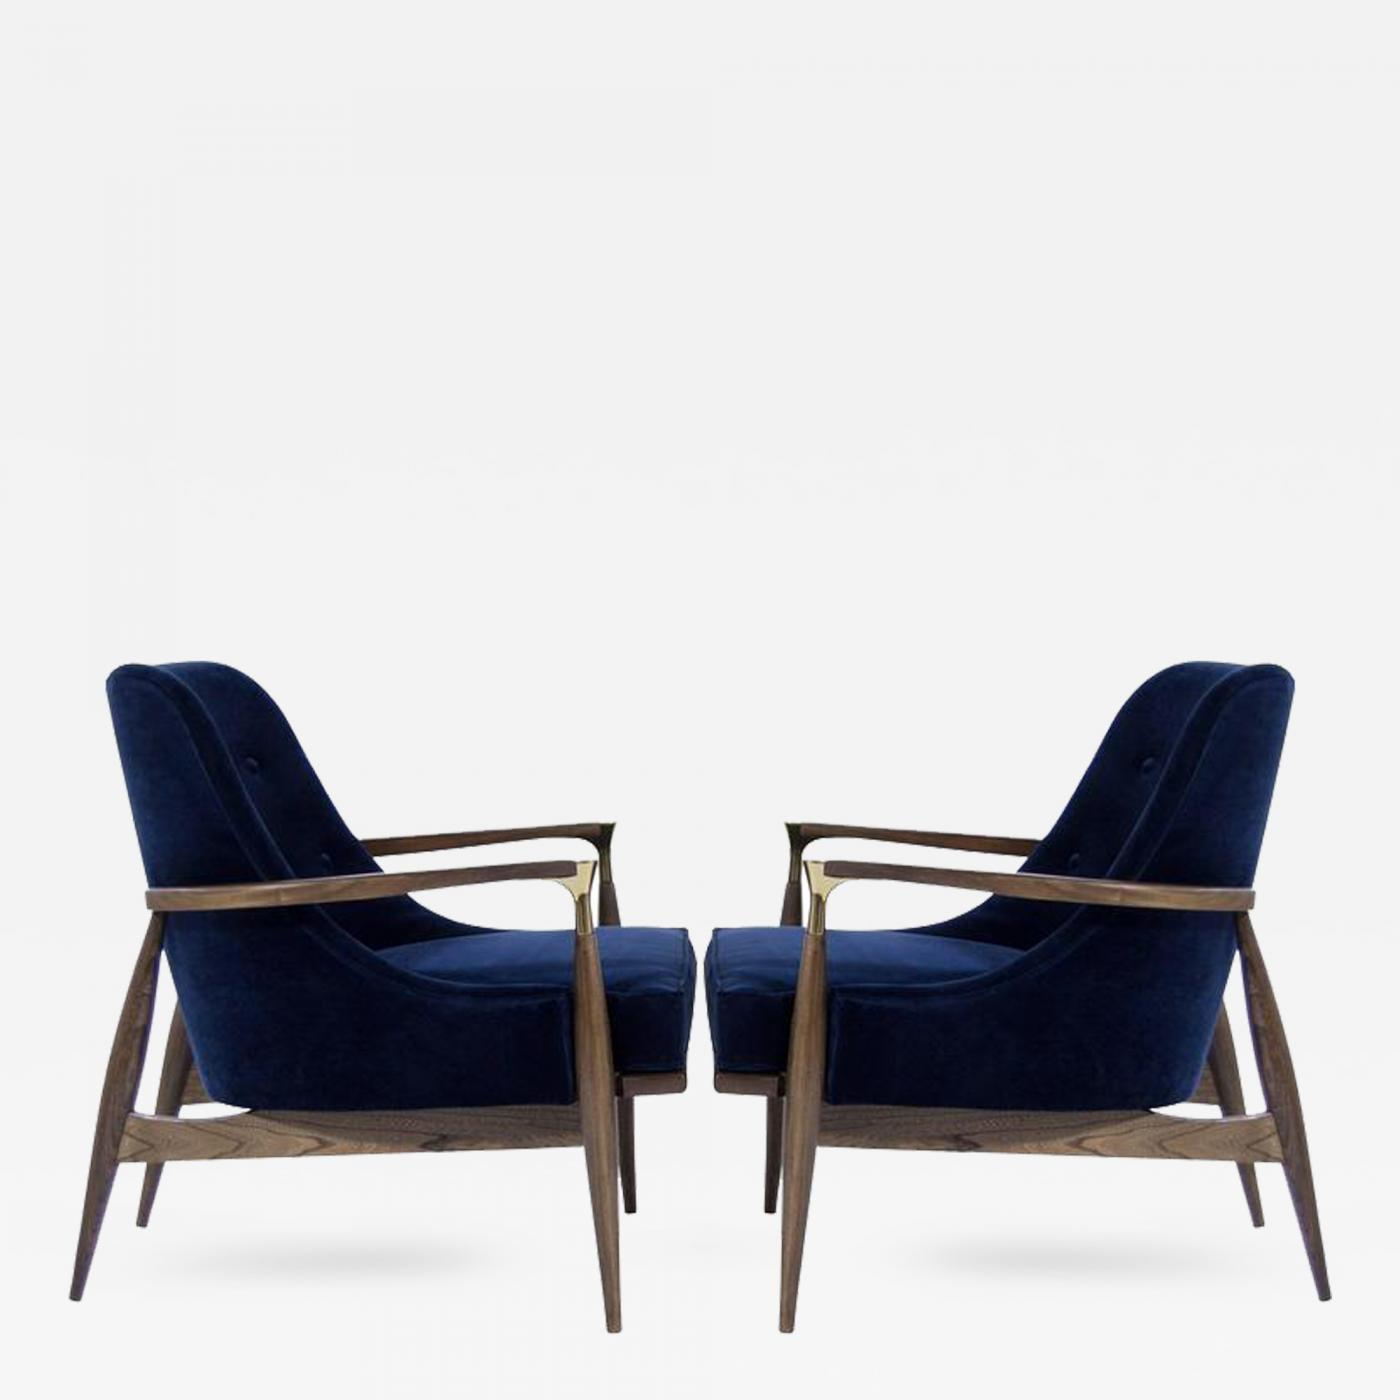 This sculptural pair of lounge chairs by ib kofod larsen is no longer - Listings Furniture Seating Armchairs Ib Kofod Larsen Danish Modern Lounge